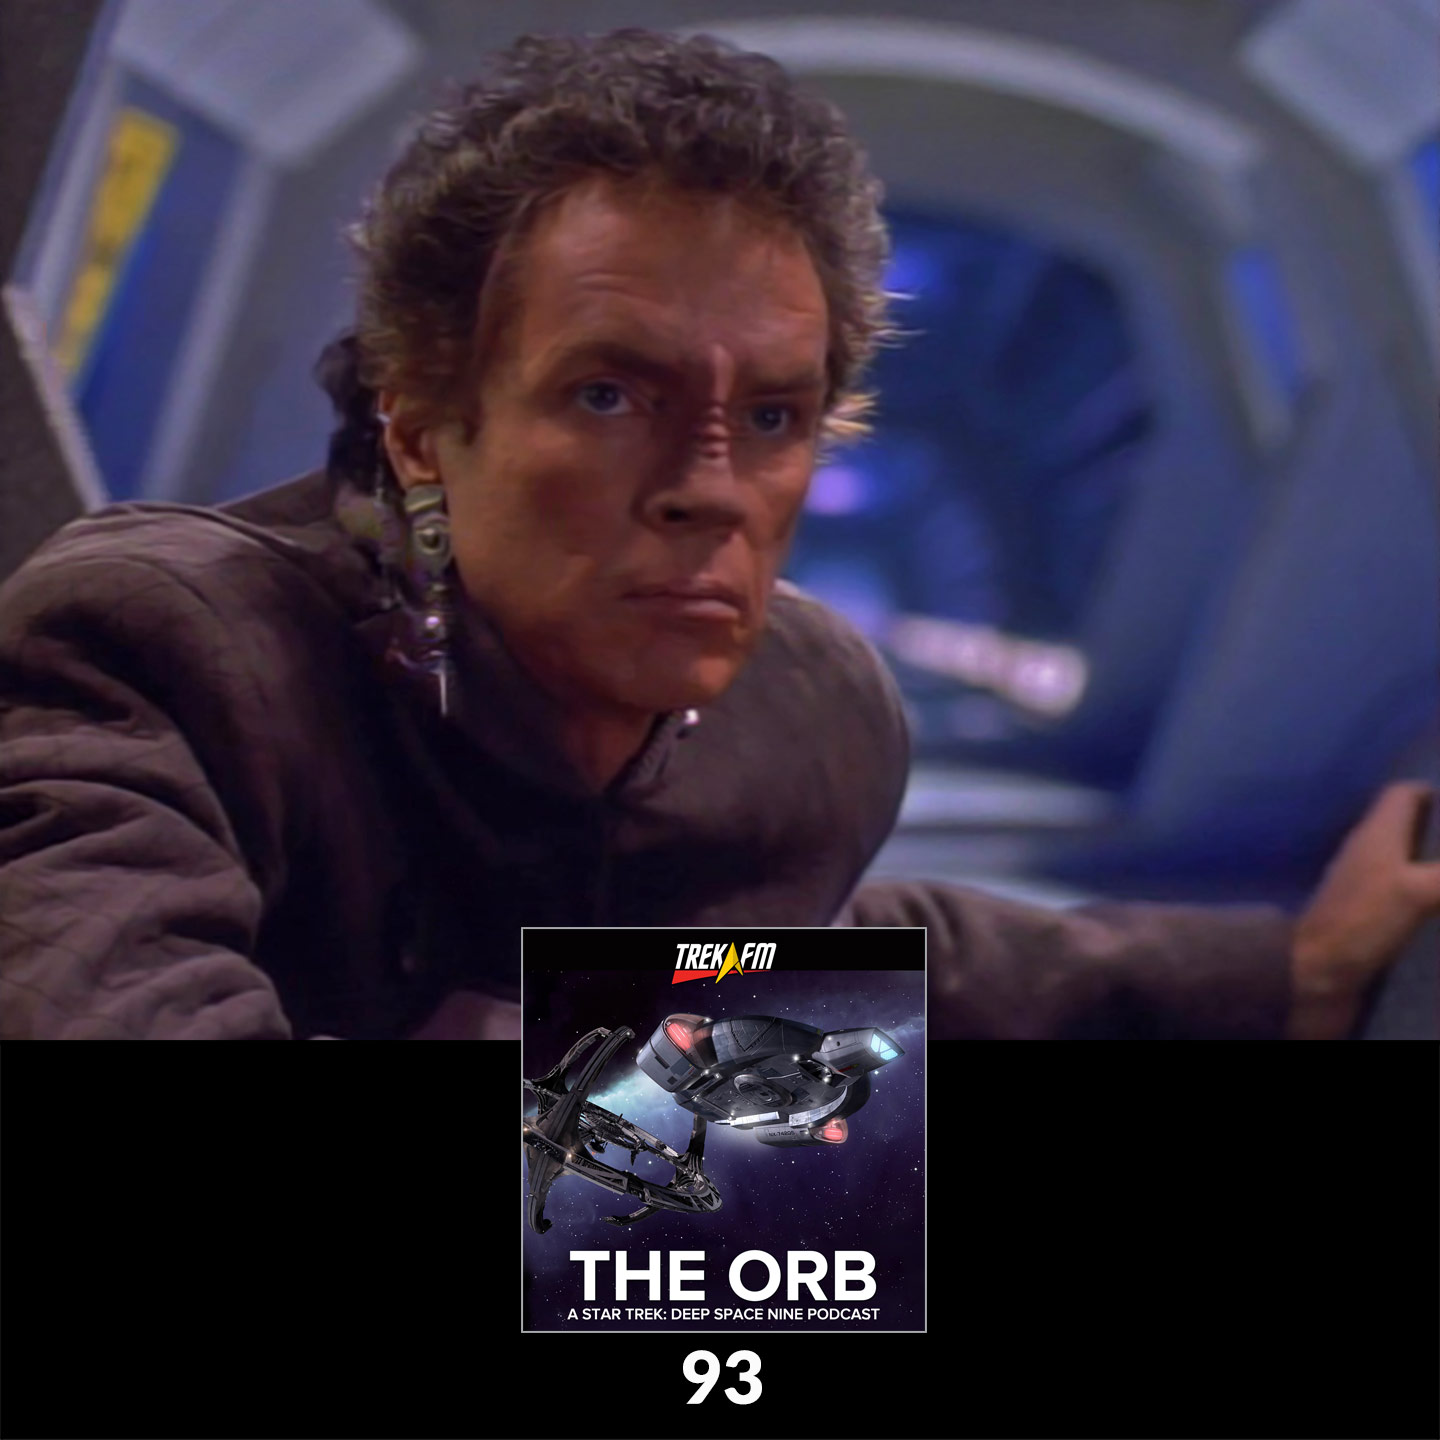 The Orb 93: The Navarch Awakens